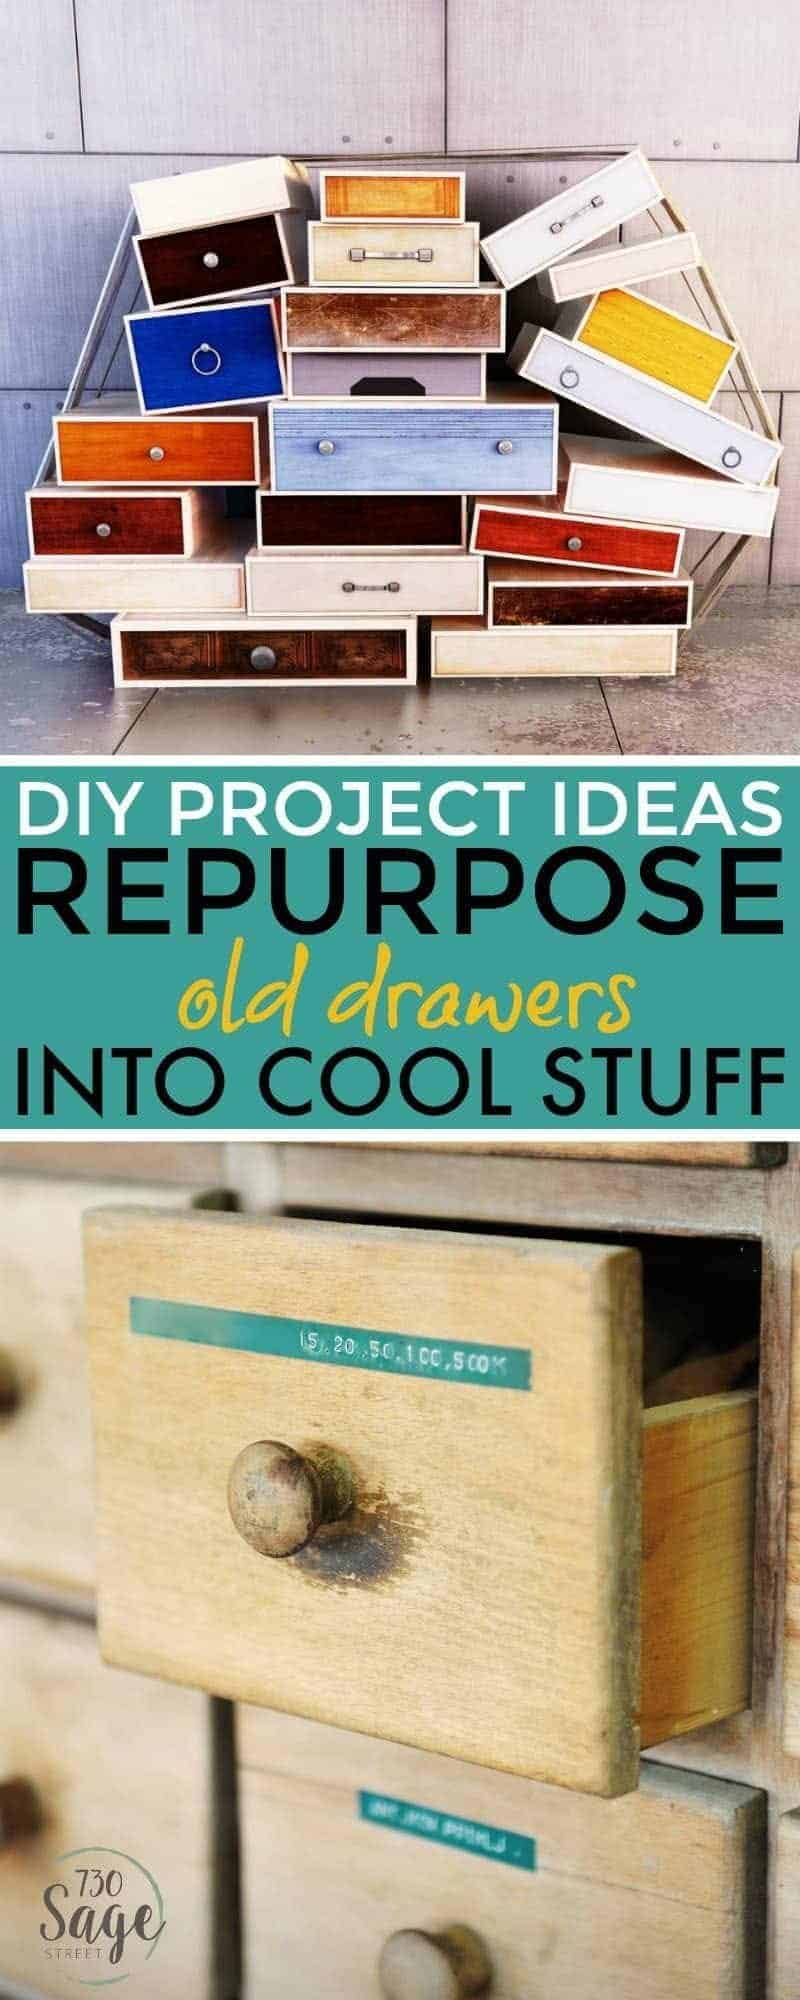 Check out these cool DIY recycled furniture projects using old drawers. Repurpose drawers into shelves, tables, planters, decor and more!